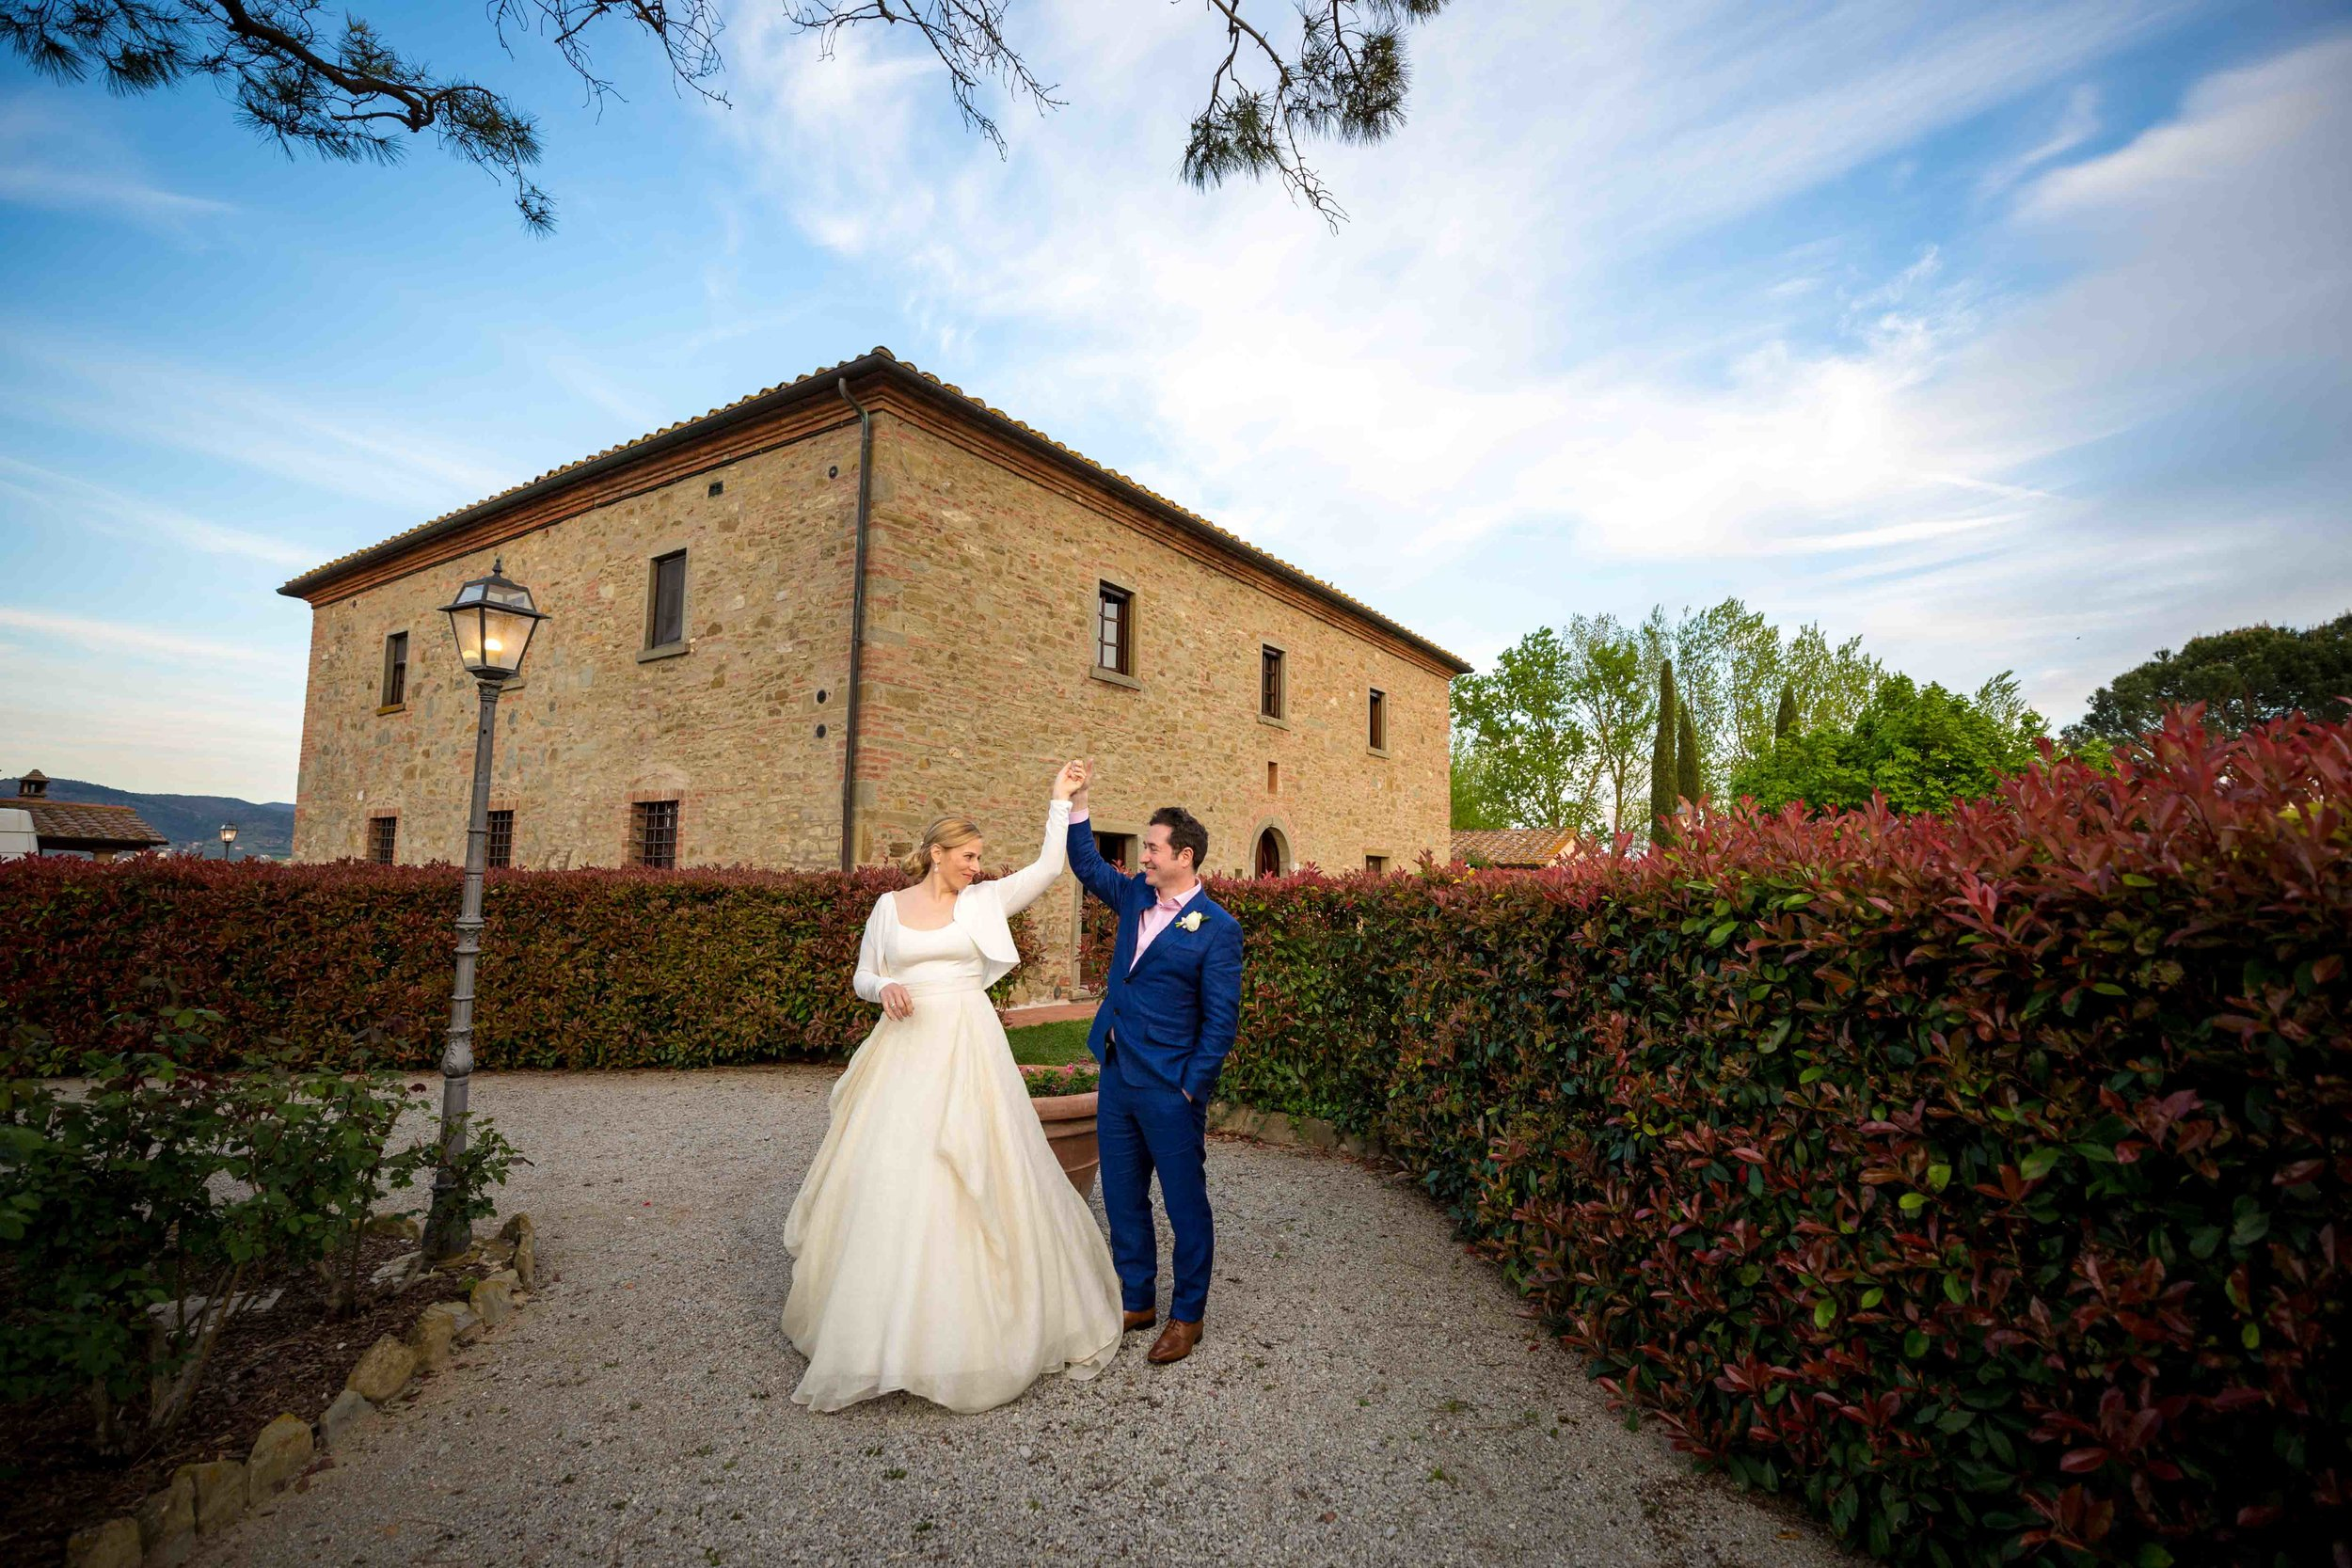 Cortona Wedding Photographer Tuscany Tuscan Emma Villas Plus Italy Destination Photgraphy-84.jpg